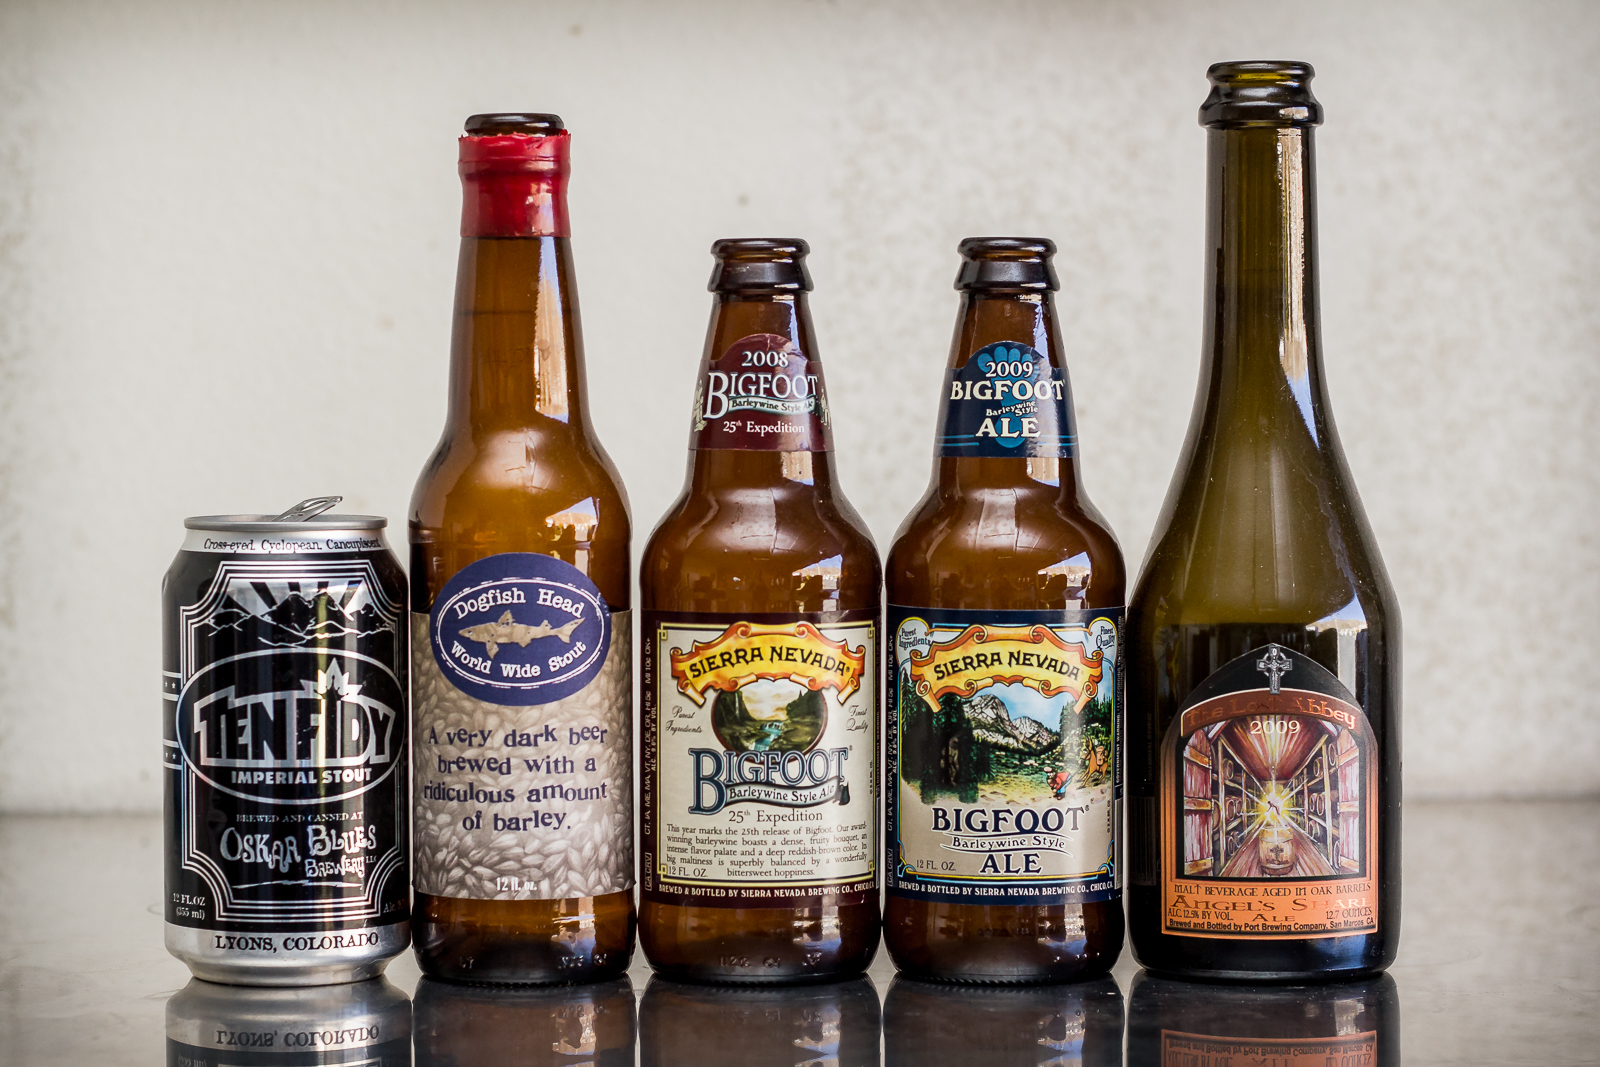 Oskar Blues Brewery, Sierra Nevada Brewing Company, Dogfish Head Brewery, and The Lost Abbey beers.